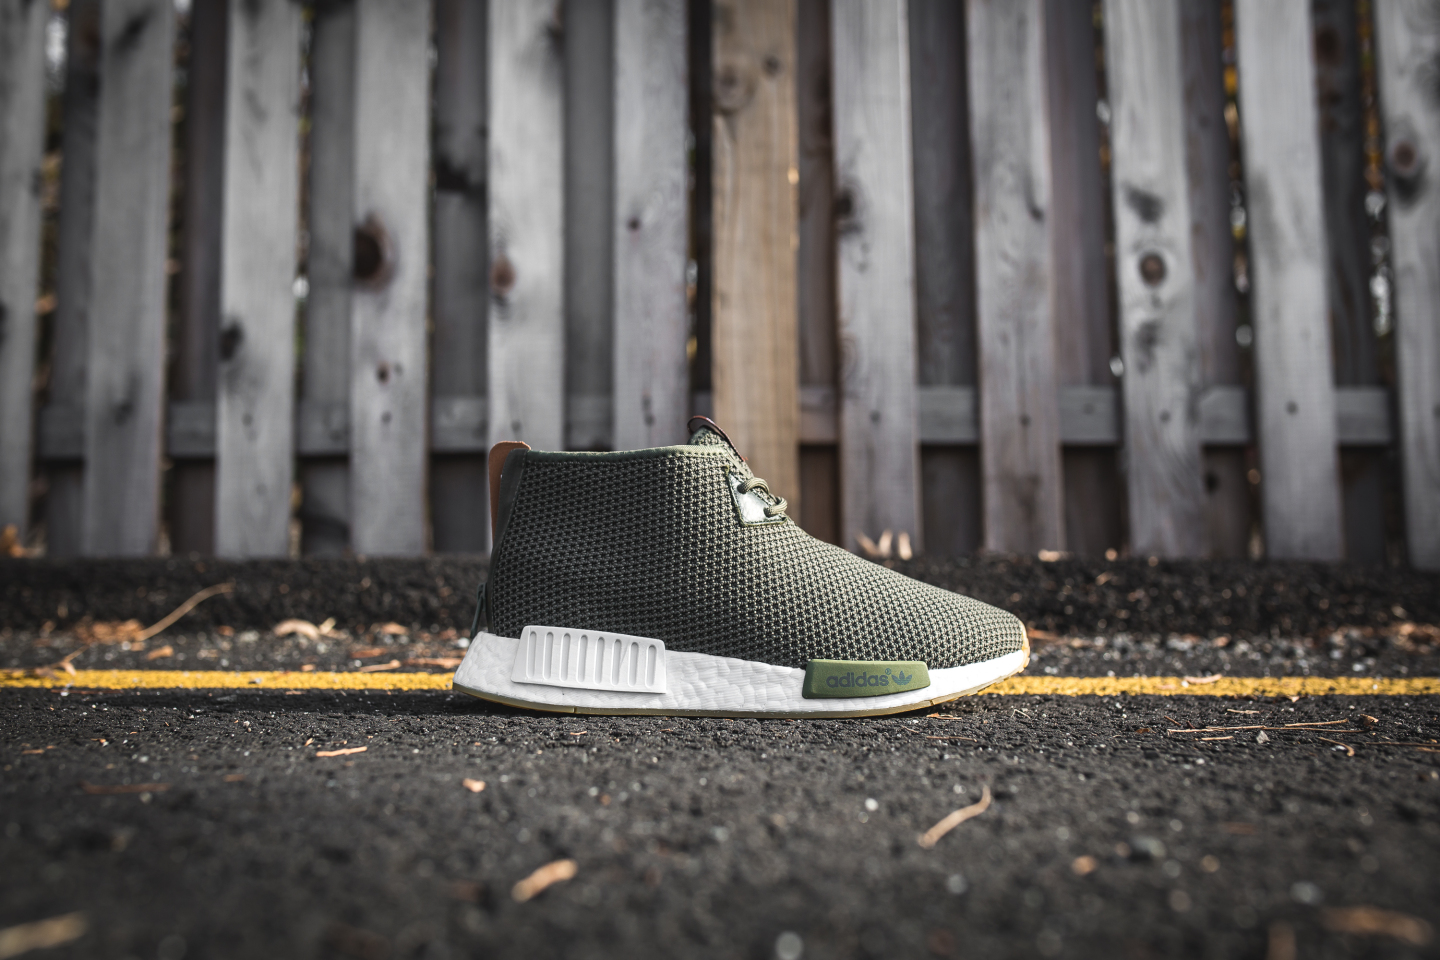 The Cheap Adidas NMD City Sock Could Be Getting a Gore Tex Upgrade